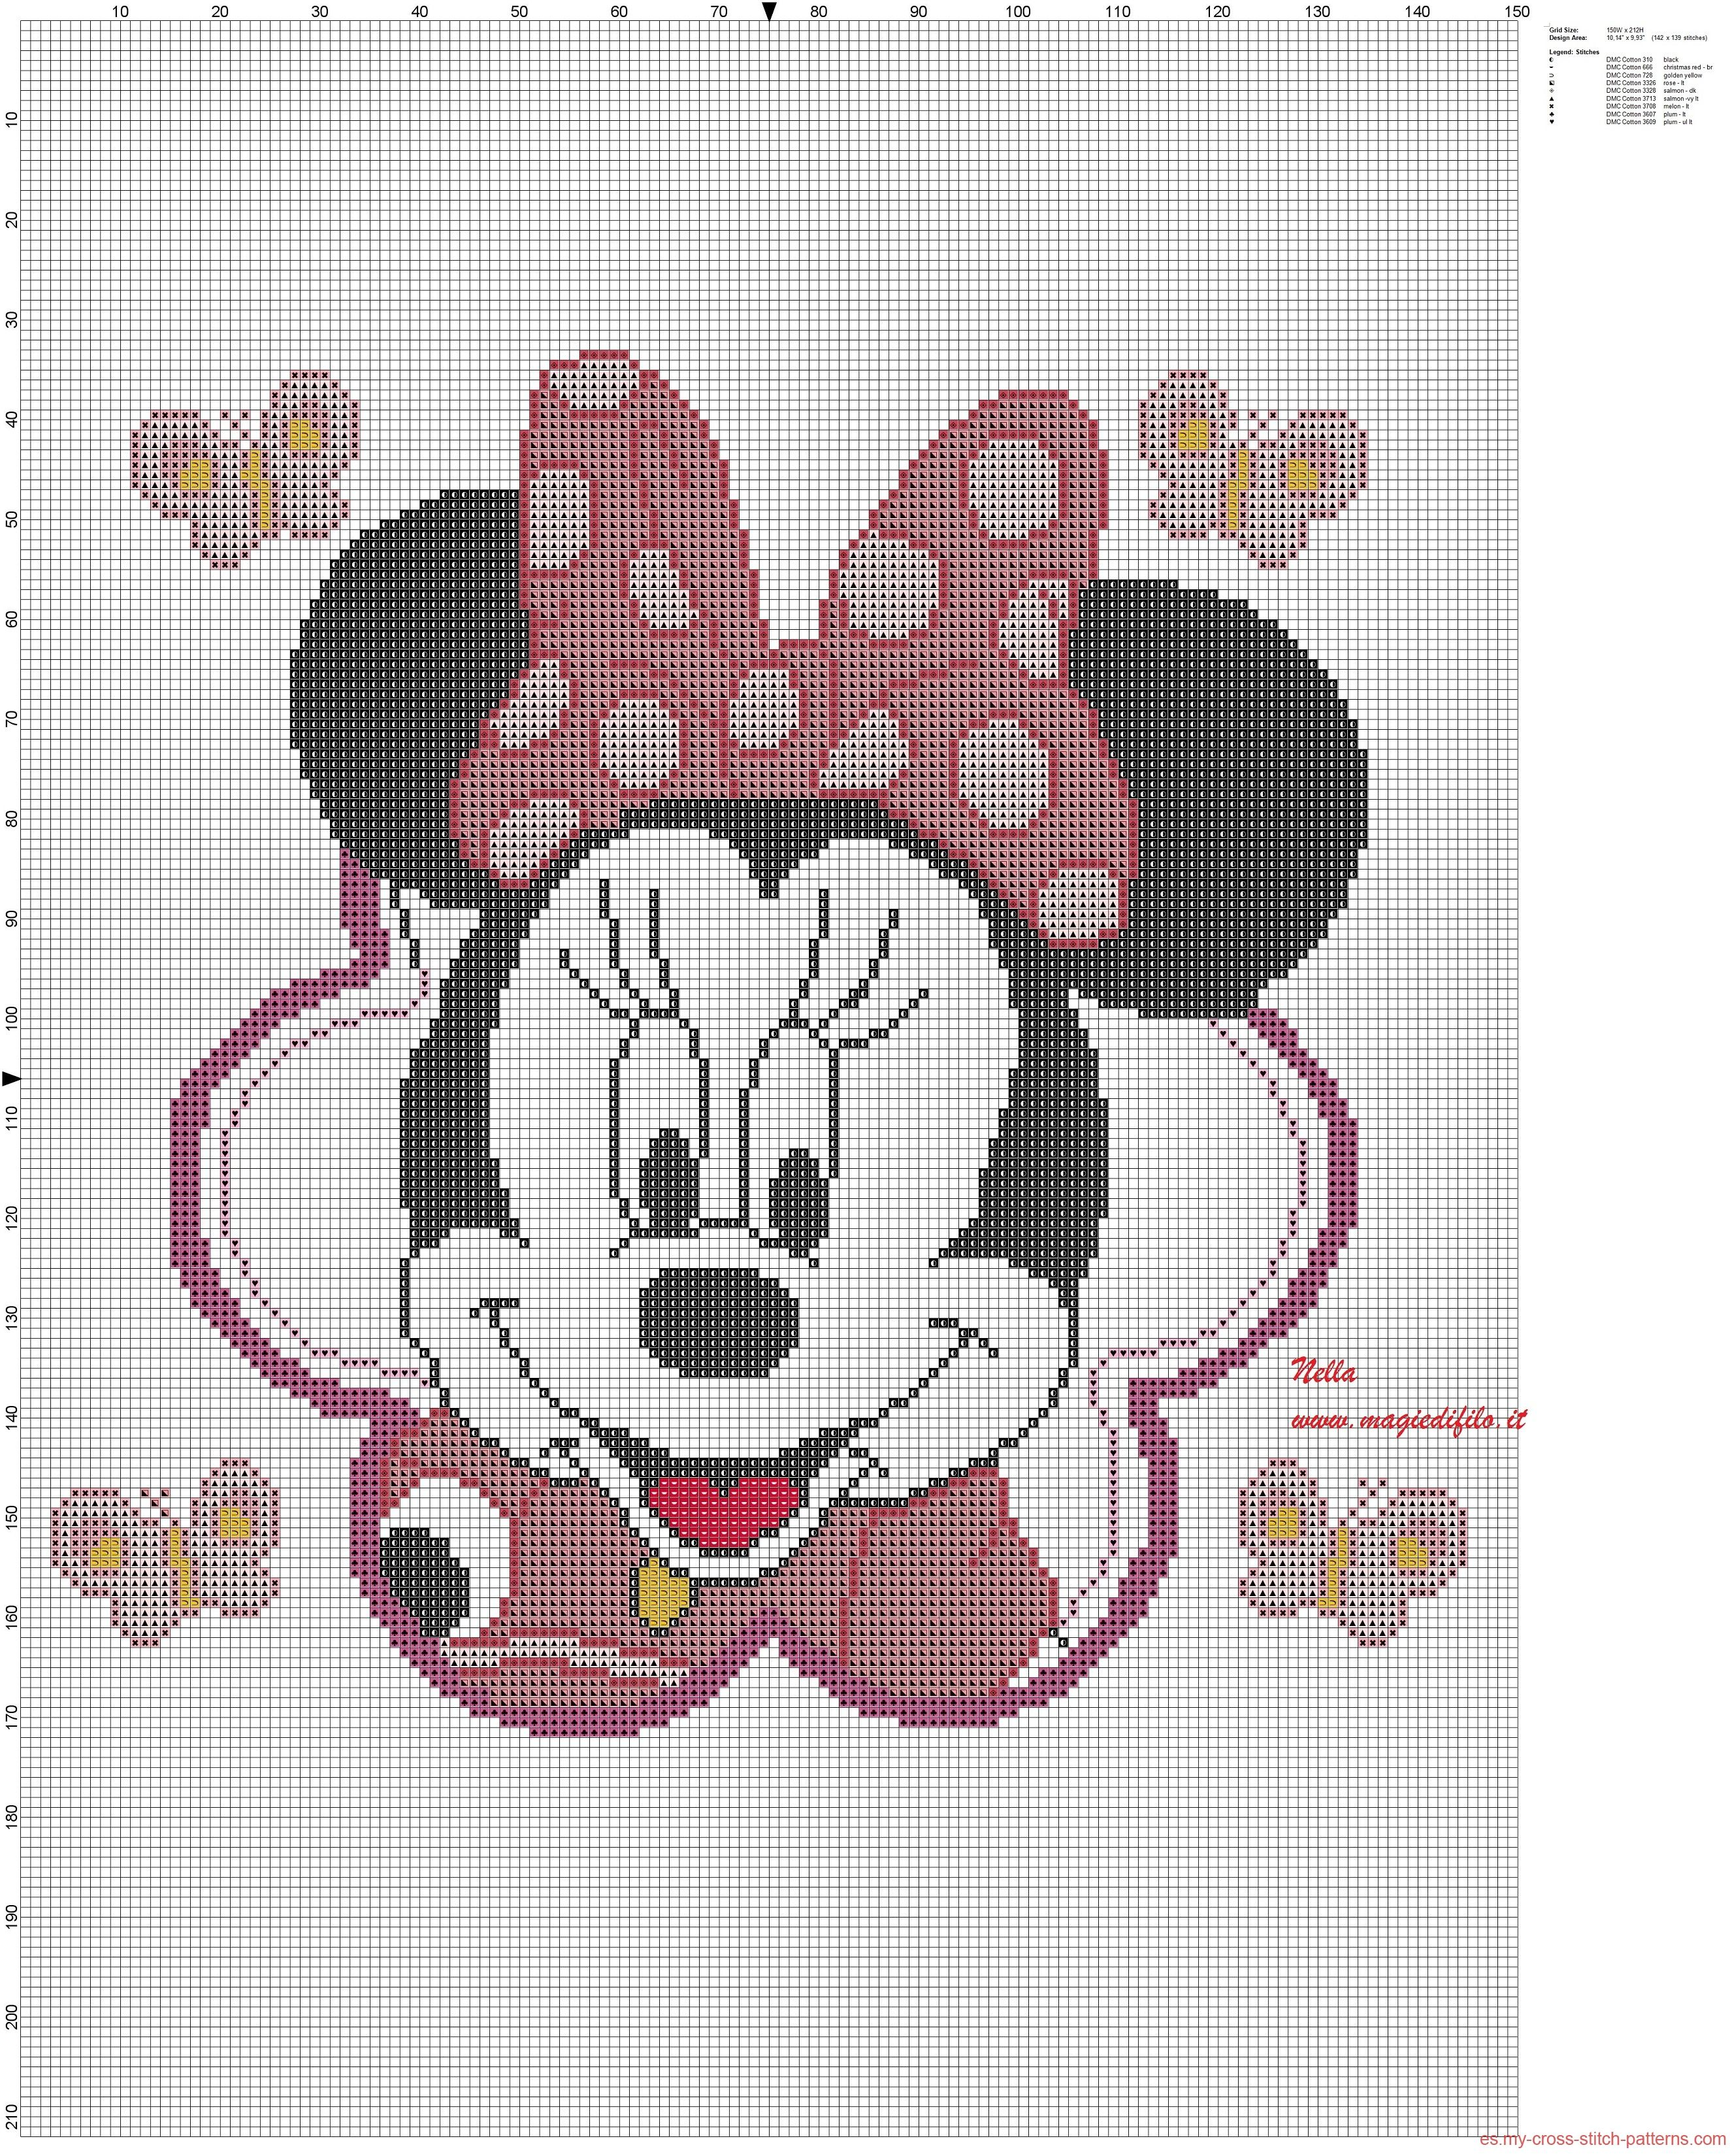 Minnie mouse almohada | Graph Patterns | Pinterest | Minnie mouse ...